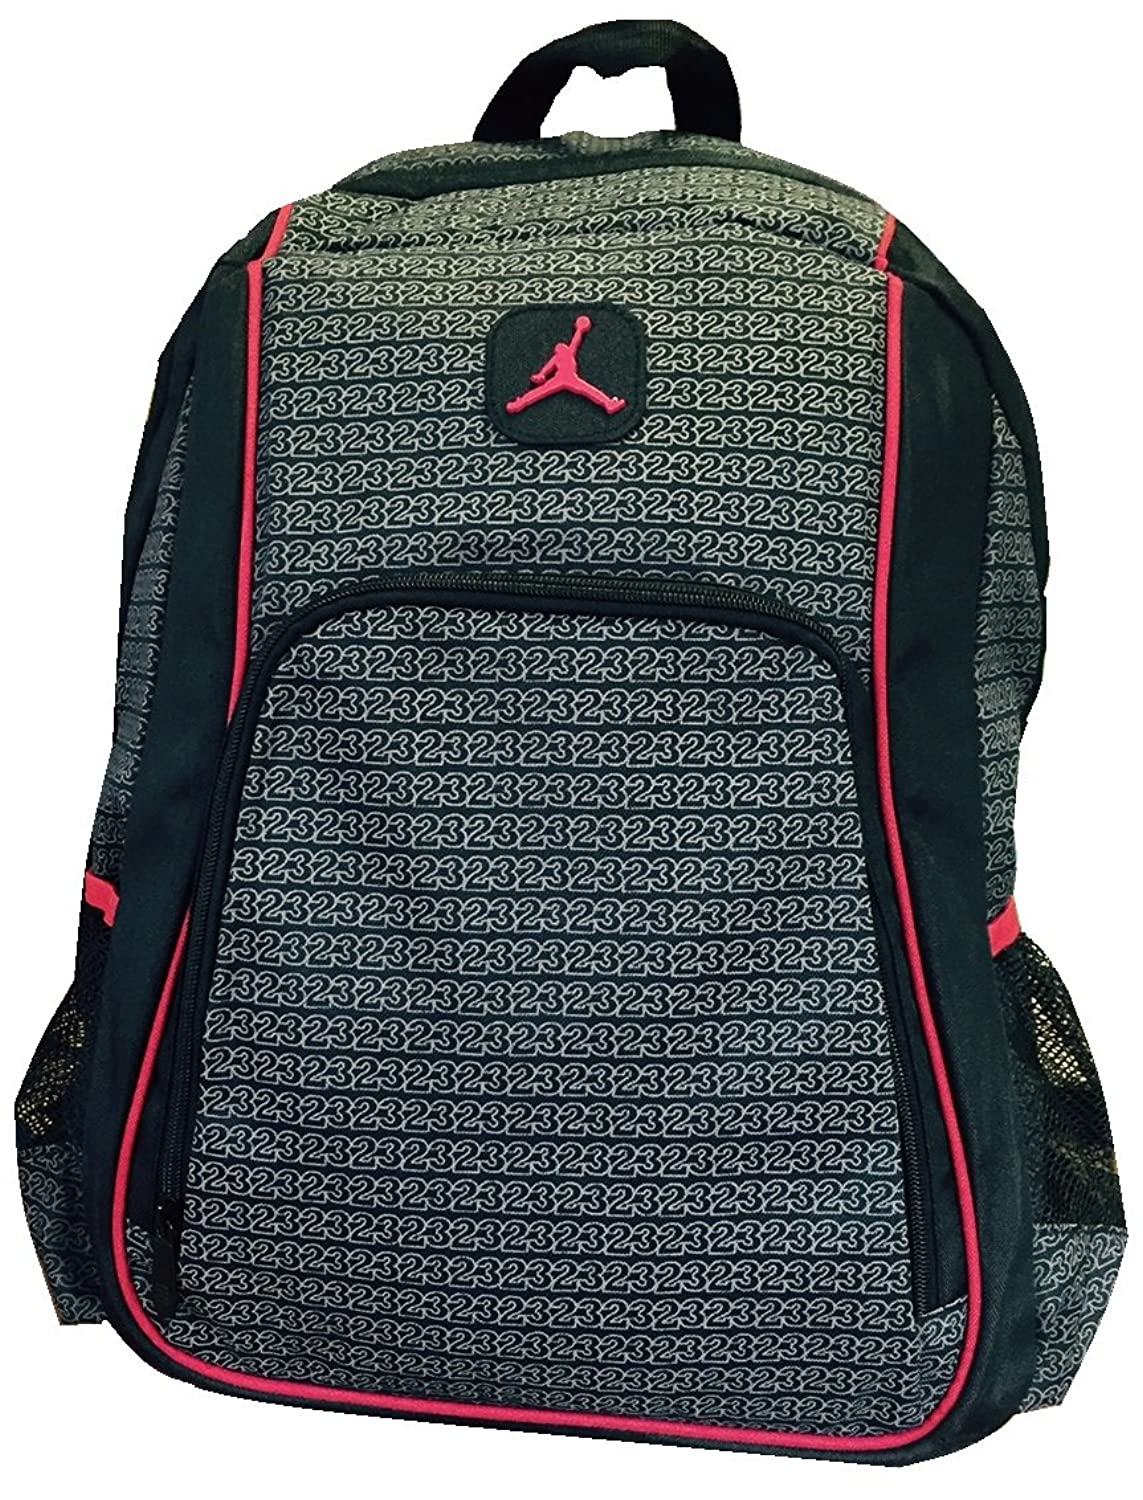 687761fc1c22 nike air school bags cheap   OFF70% The Largest Catalog Discounts